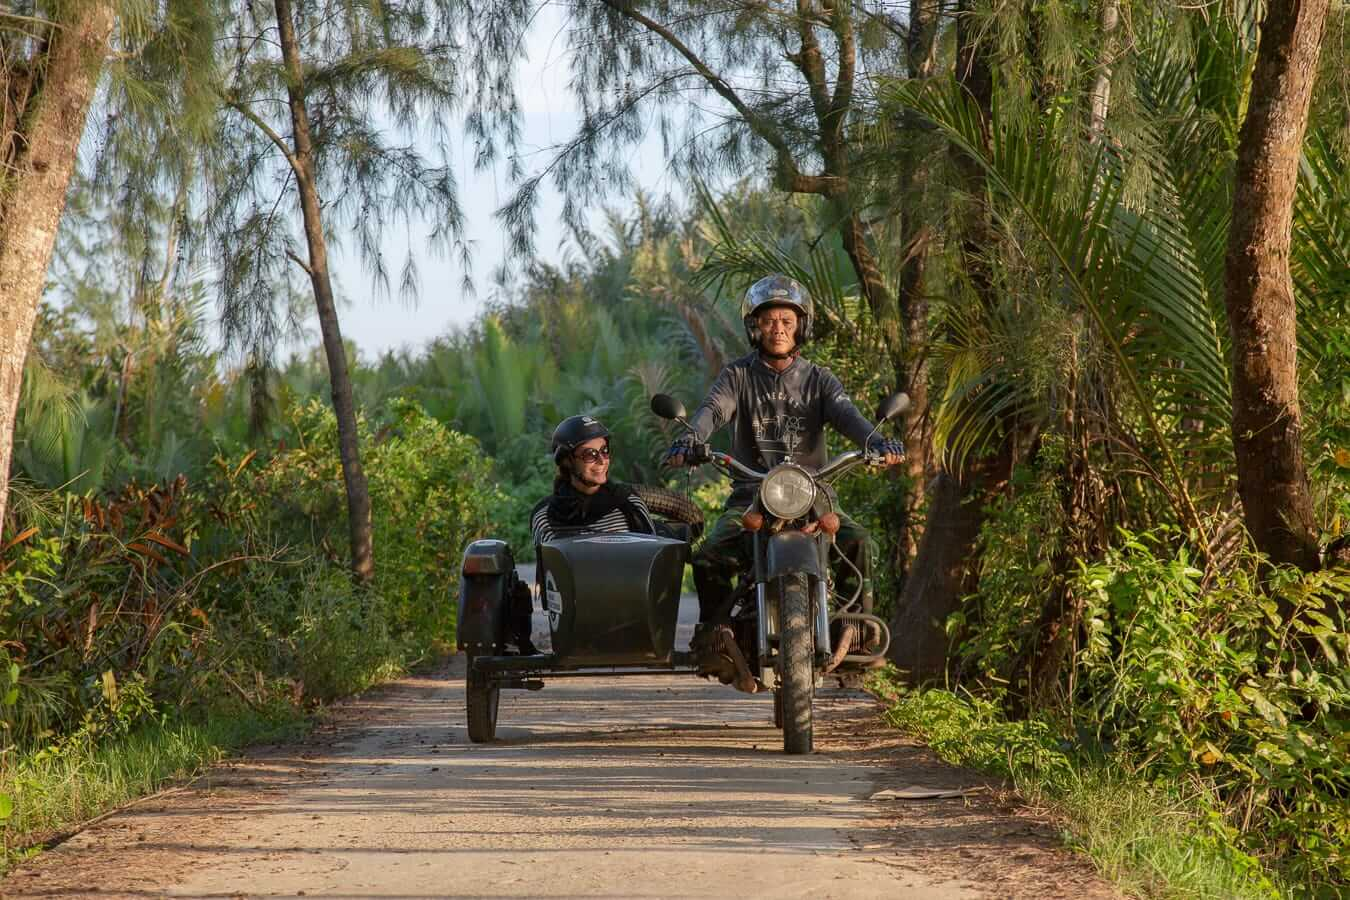 Hoi An Sidecar tours: Activities and Tours In Hoi An